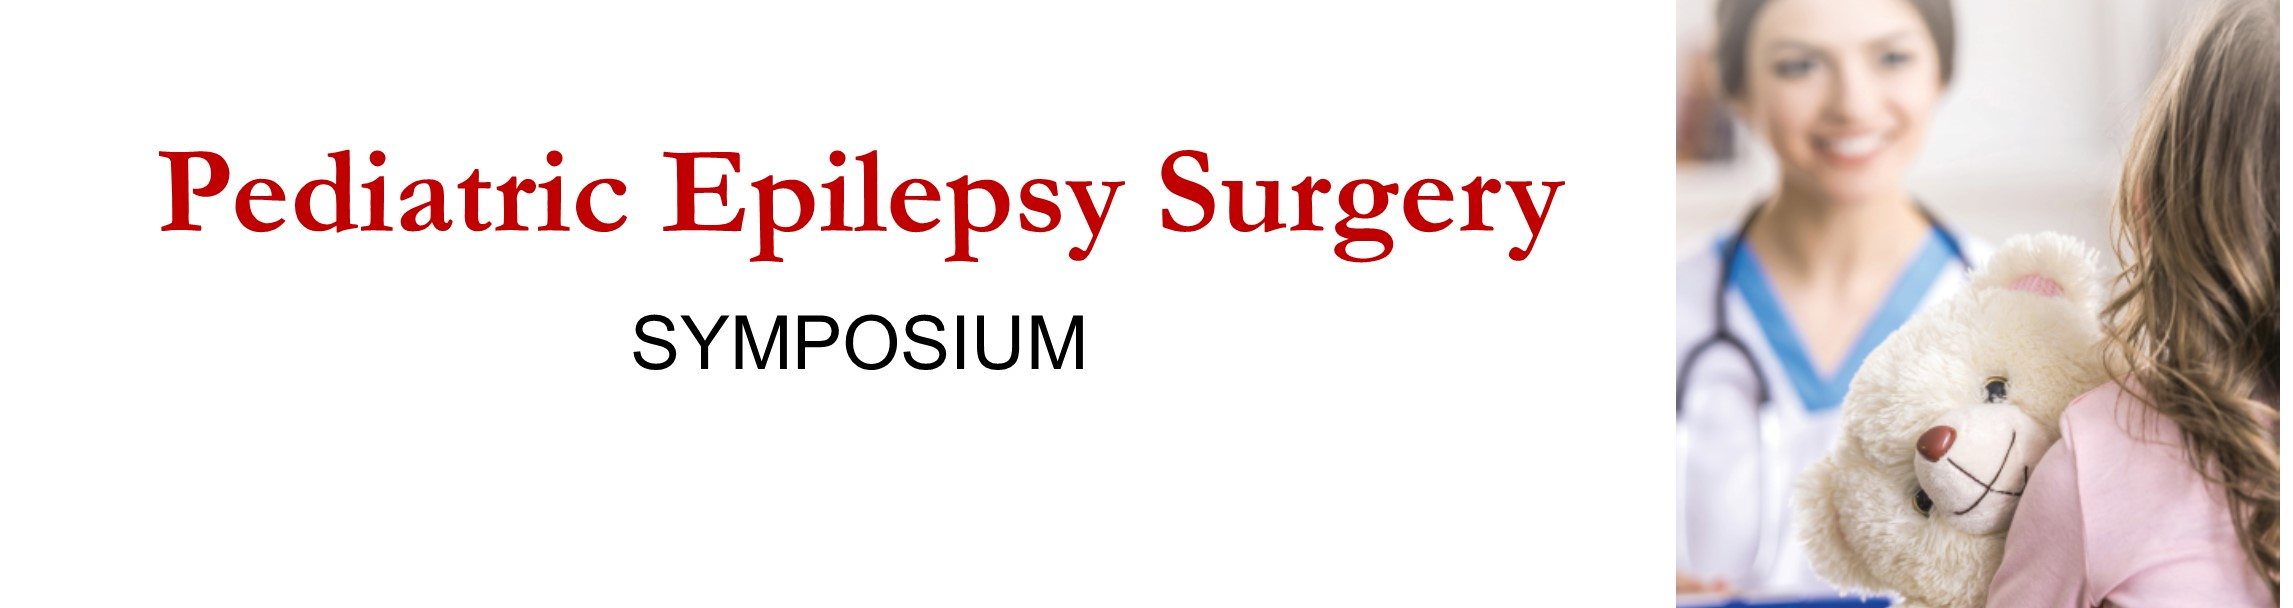 Pediatric Epilepsy Surgery Symposium Banner